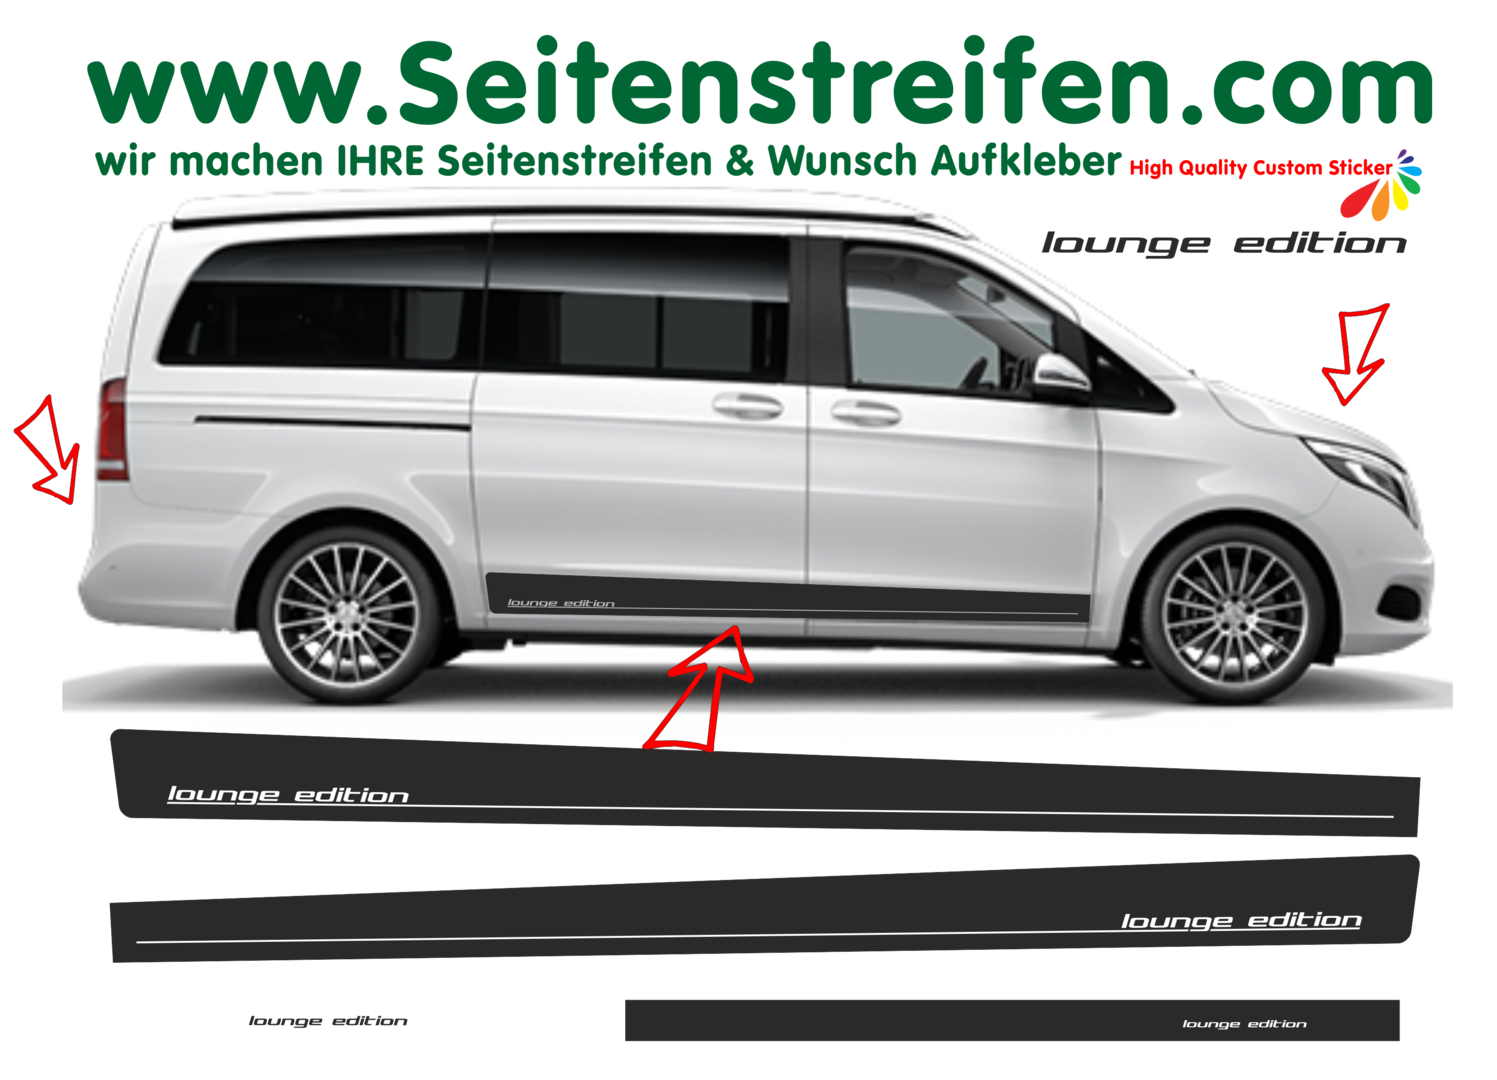 Mercedes Benz Class V Vito - model series 447/693/638 Lounge Edition - Decals Sticker Kit - N° 8847